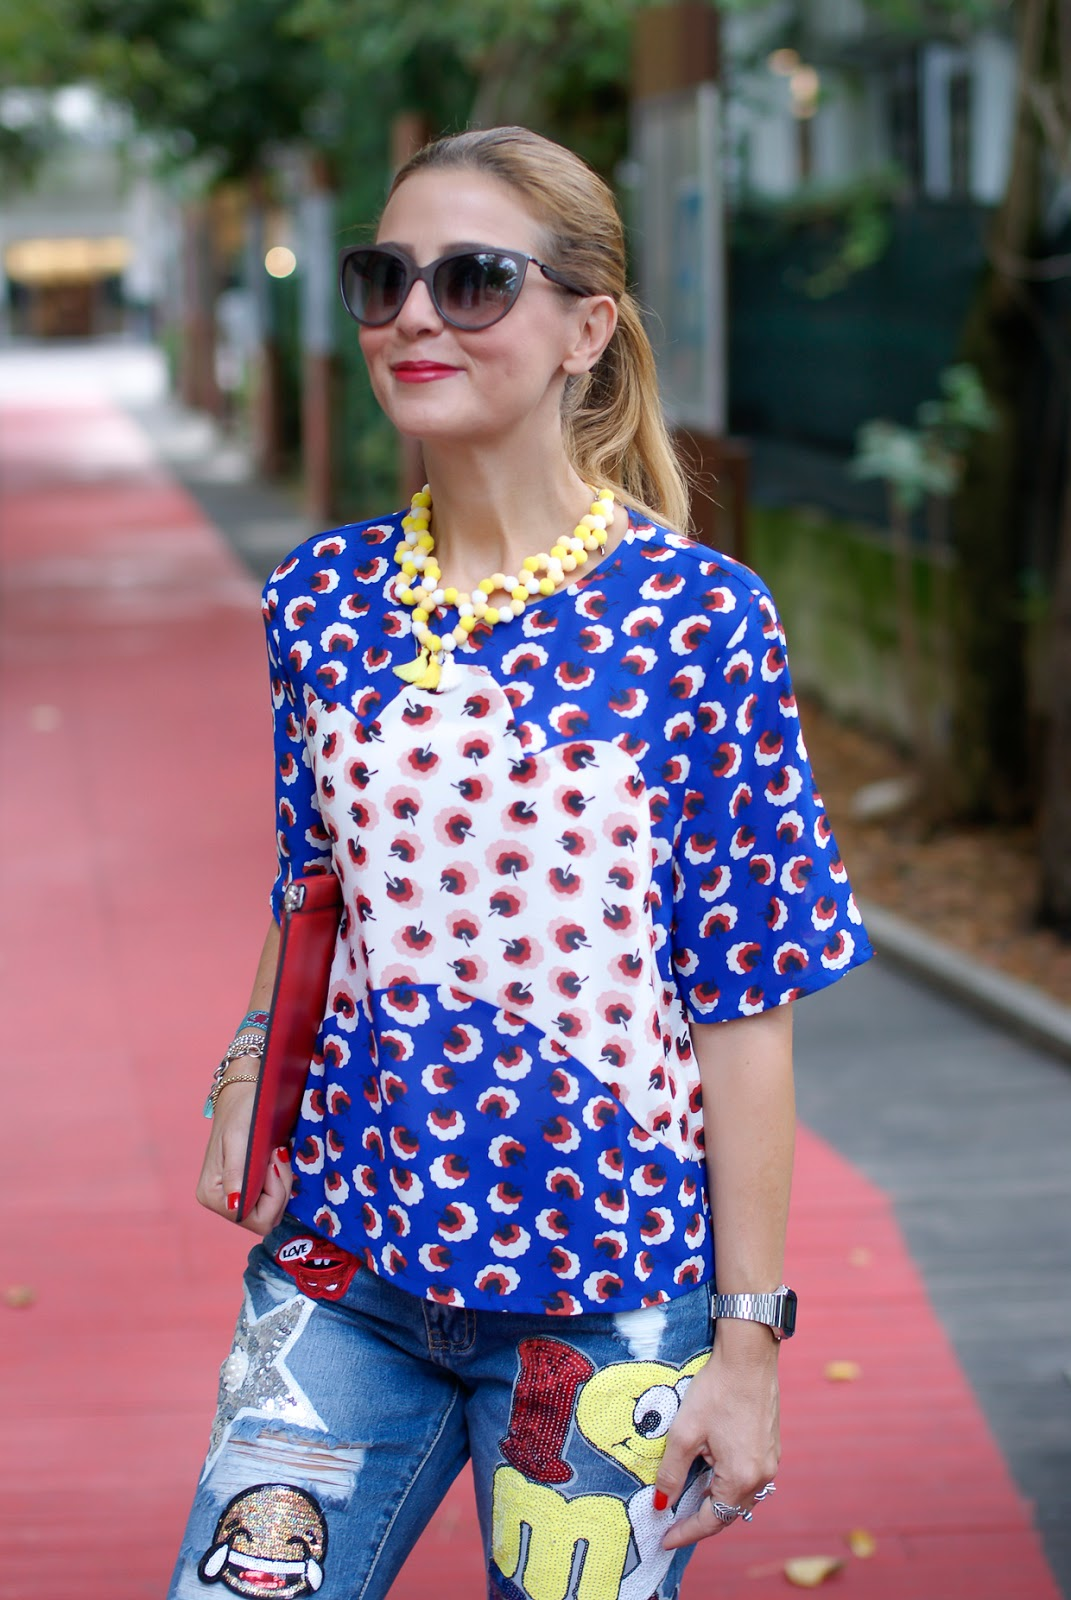 Minueto blouse and whatsapp emoji patch on Fashion and Cookies fashion blog, fashion blogger style